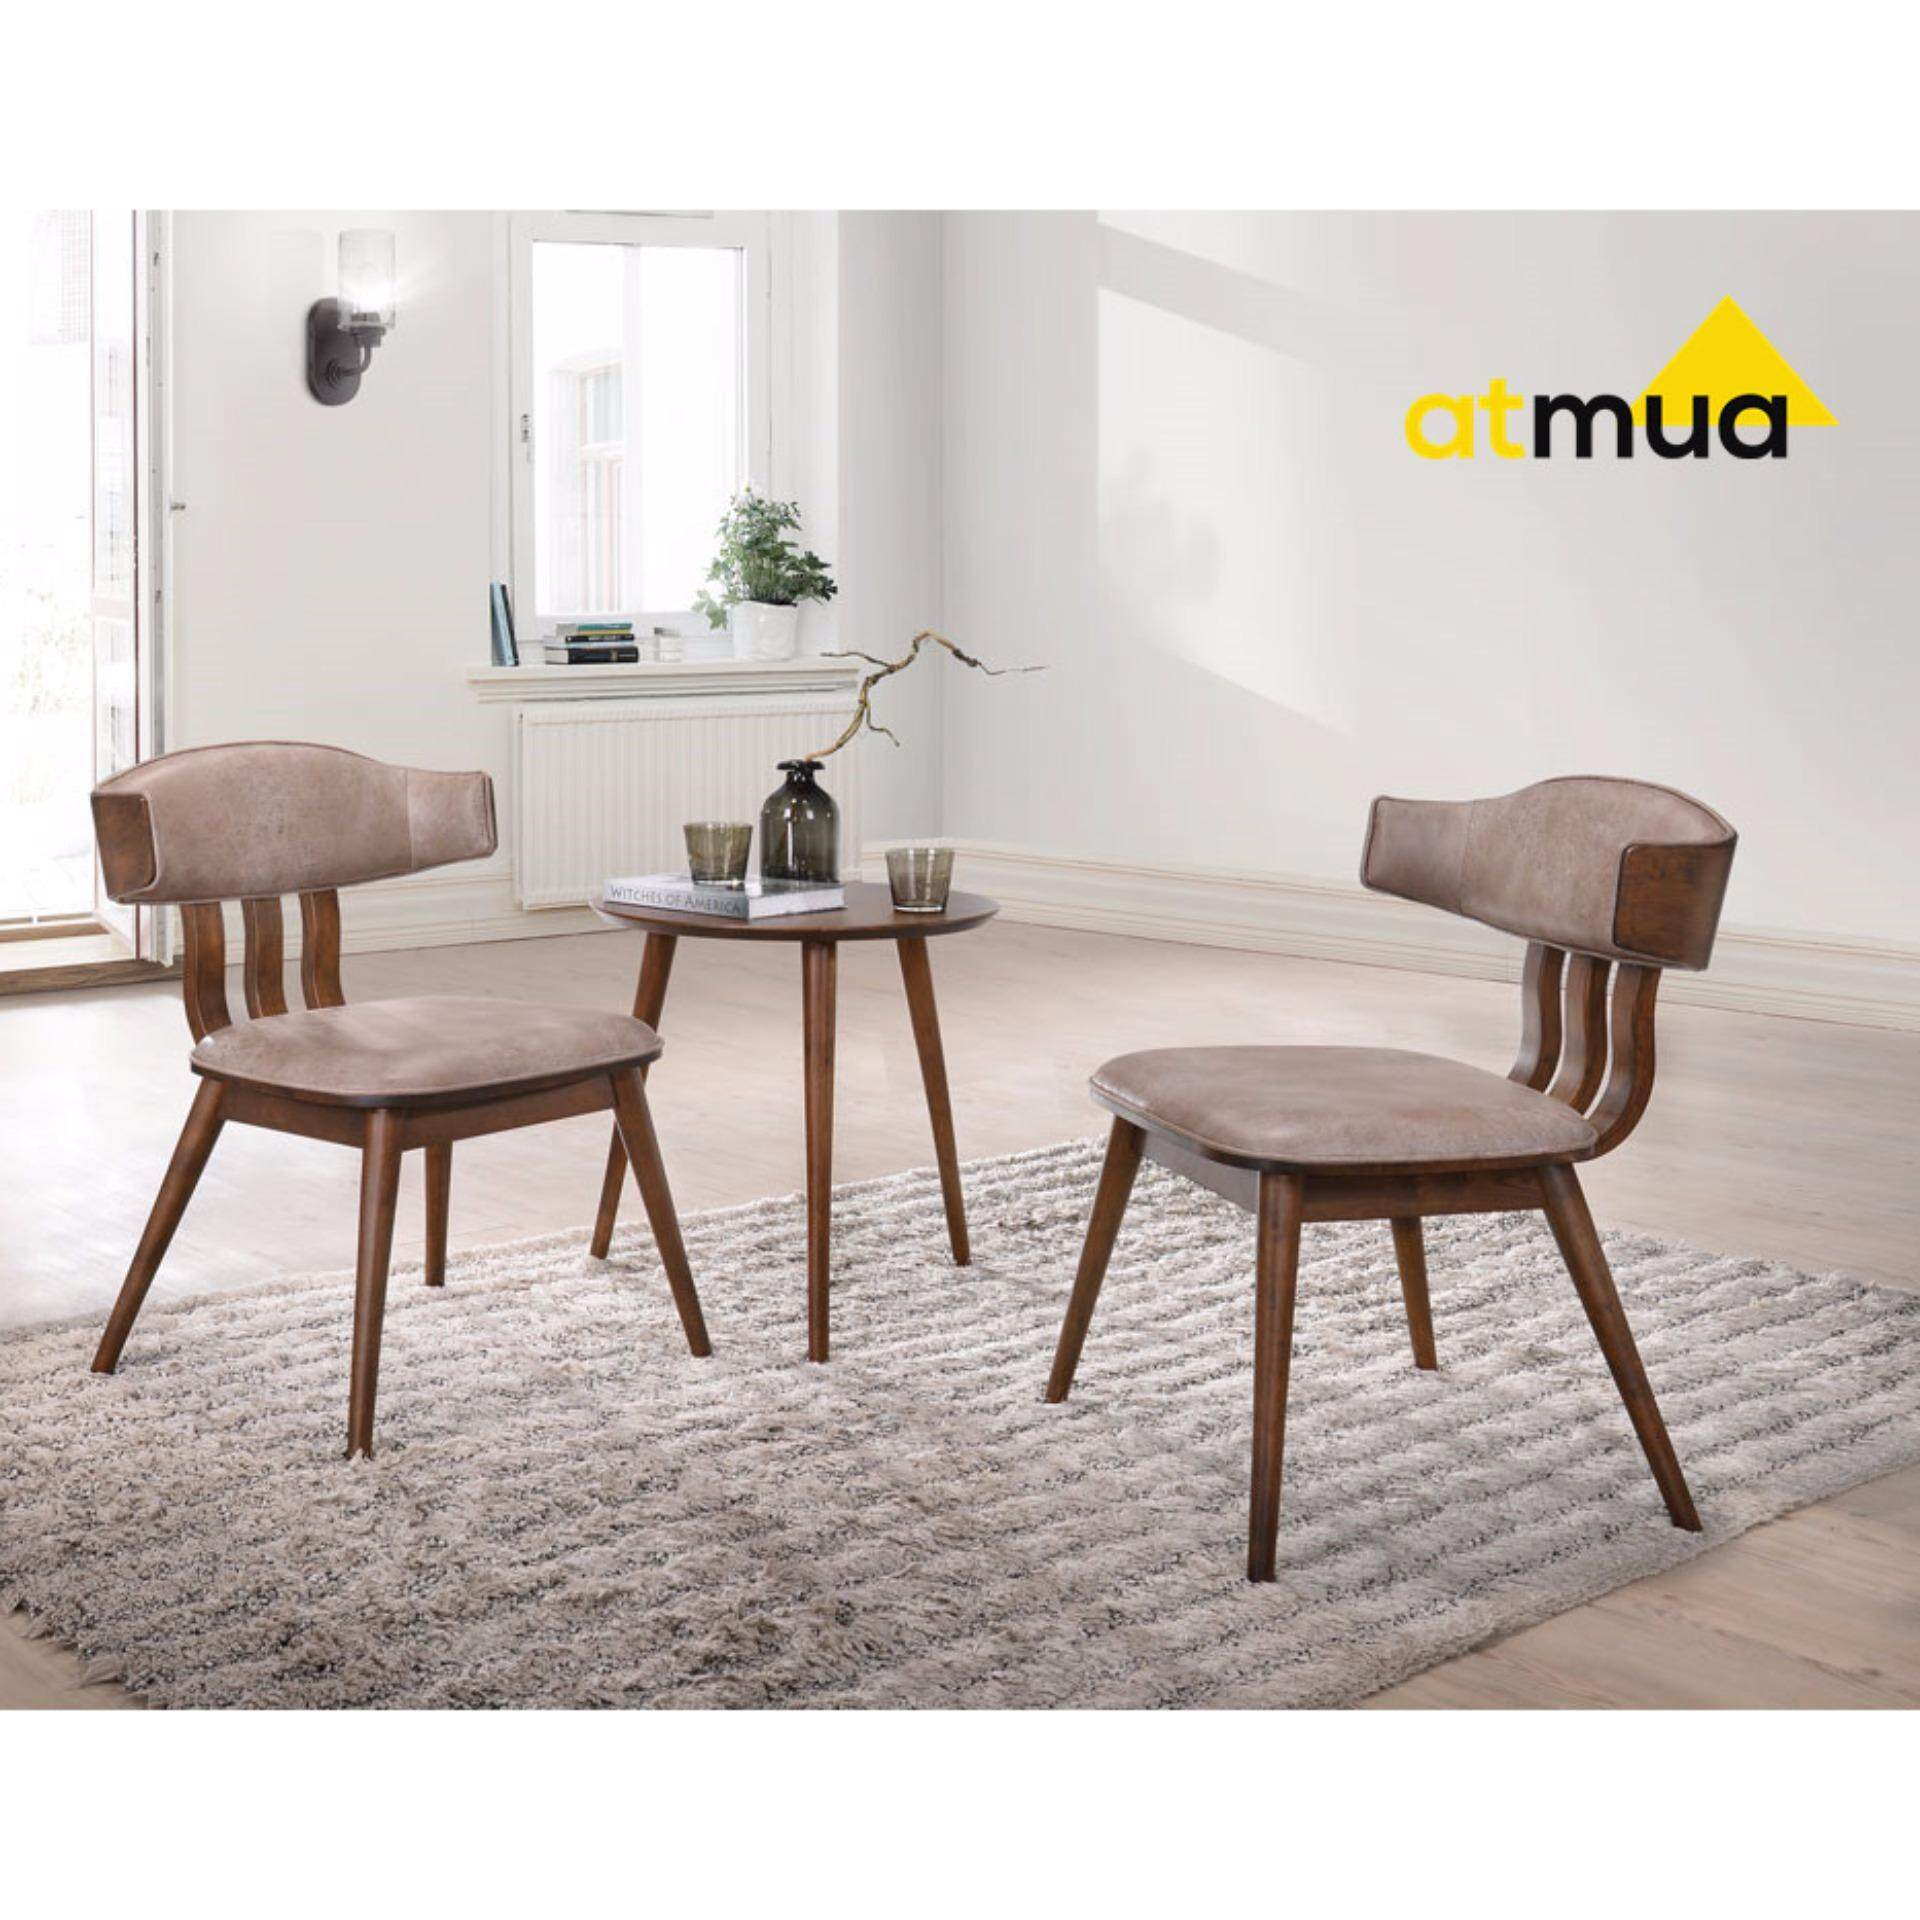 Table With 2 Chairs Atmua Koan Tea Set 2 Chairs 1 Side Table Scandinavian Style Full Solid Wood